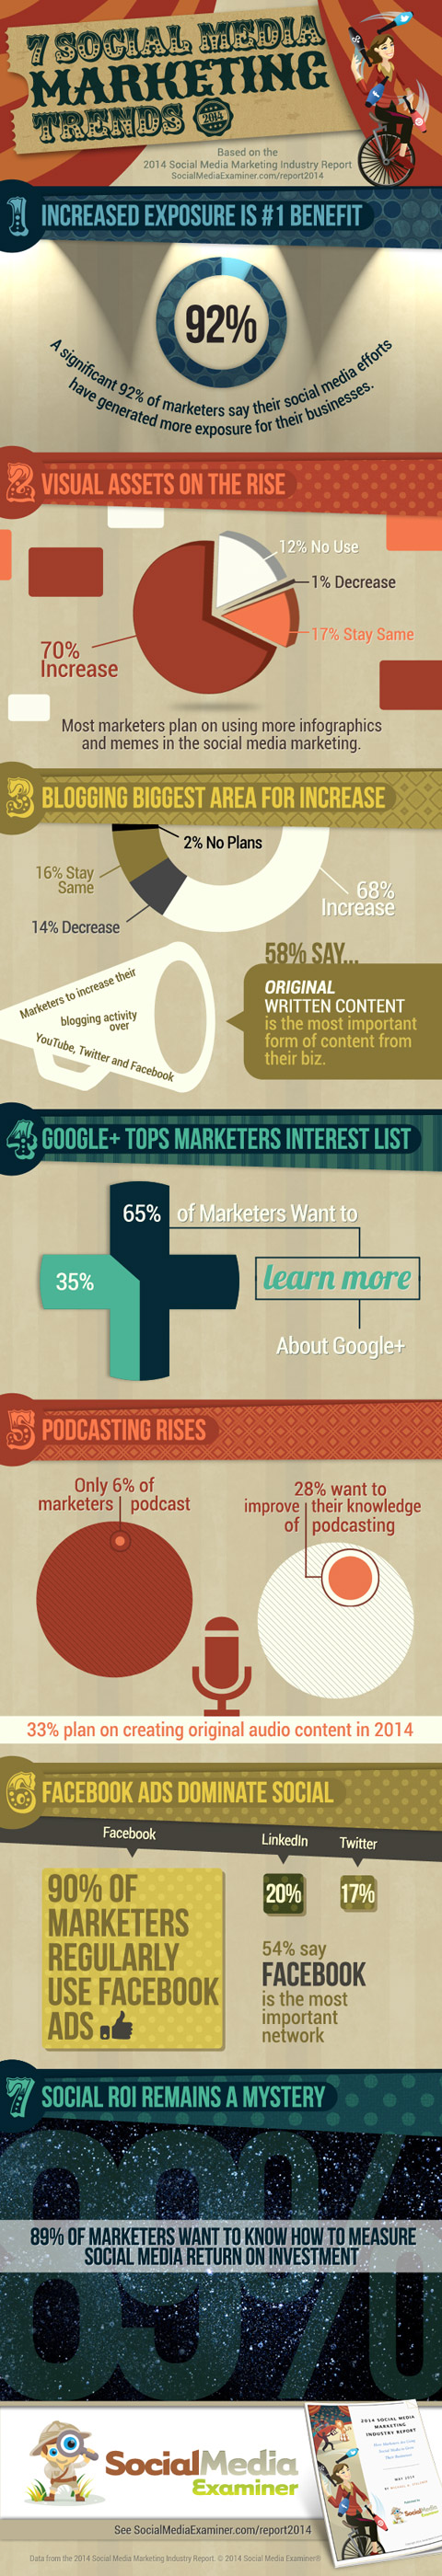 social media examiner marketing trends infographic